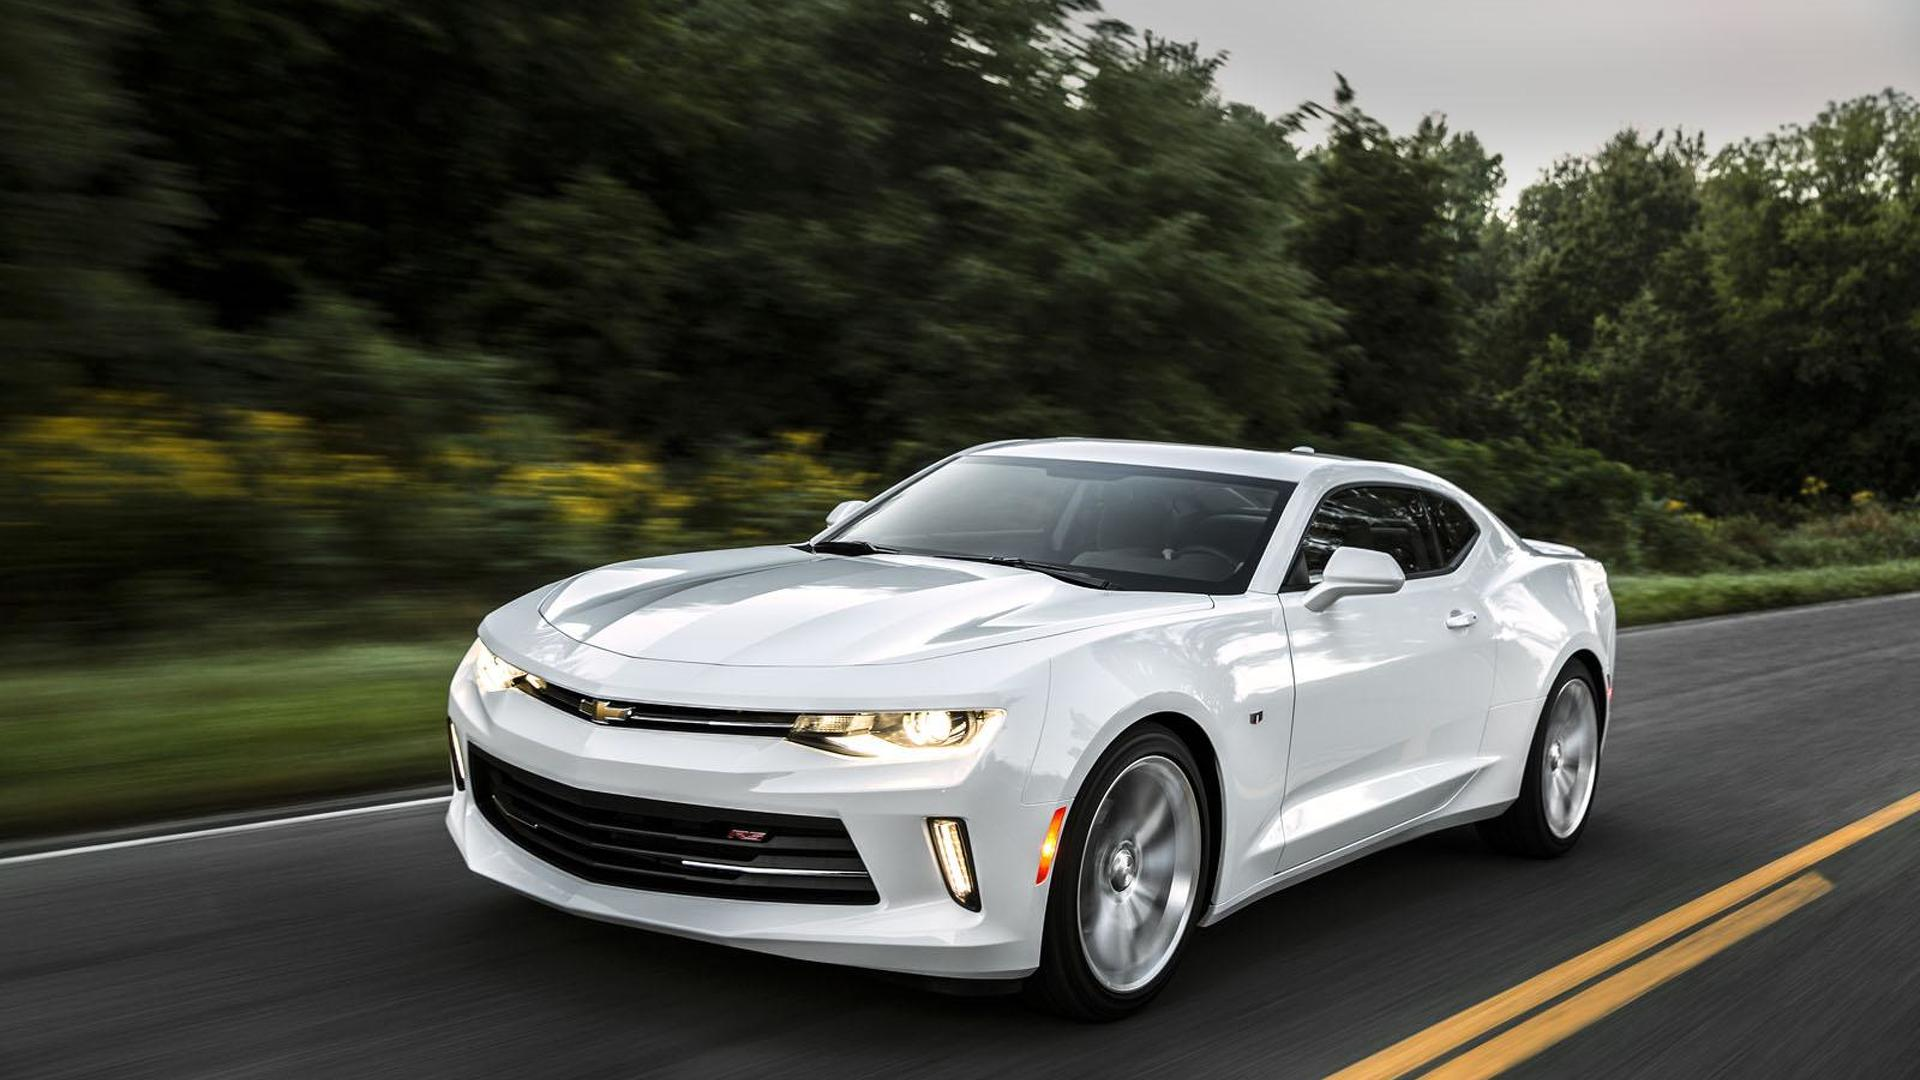 Entry-level Chevy Camaro could gain performance package